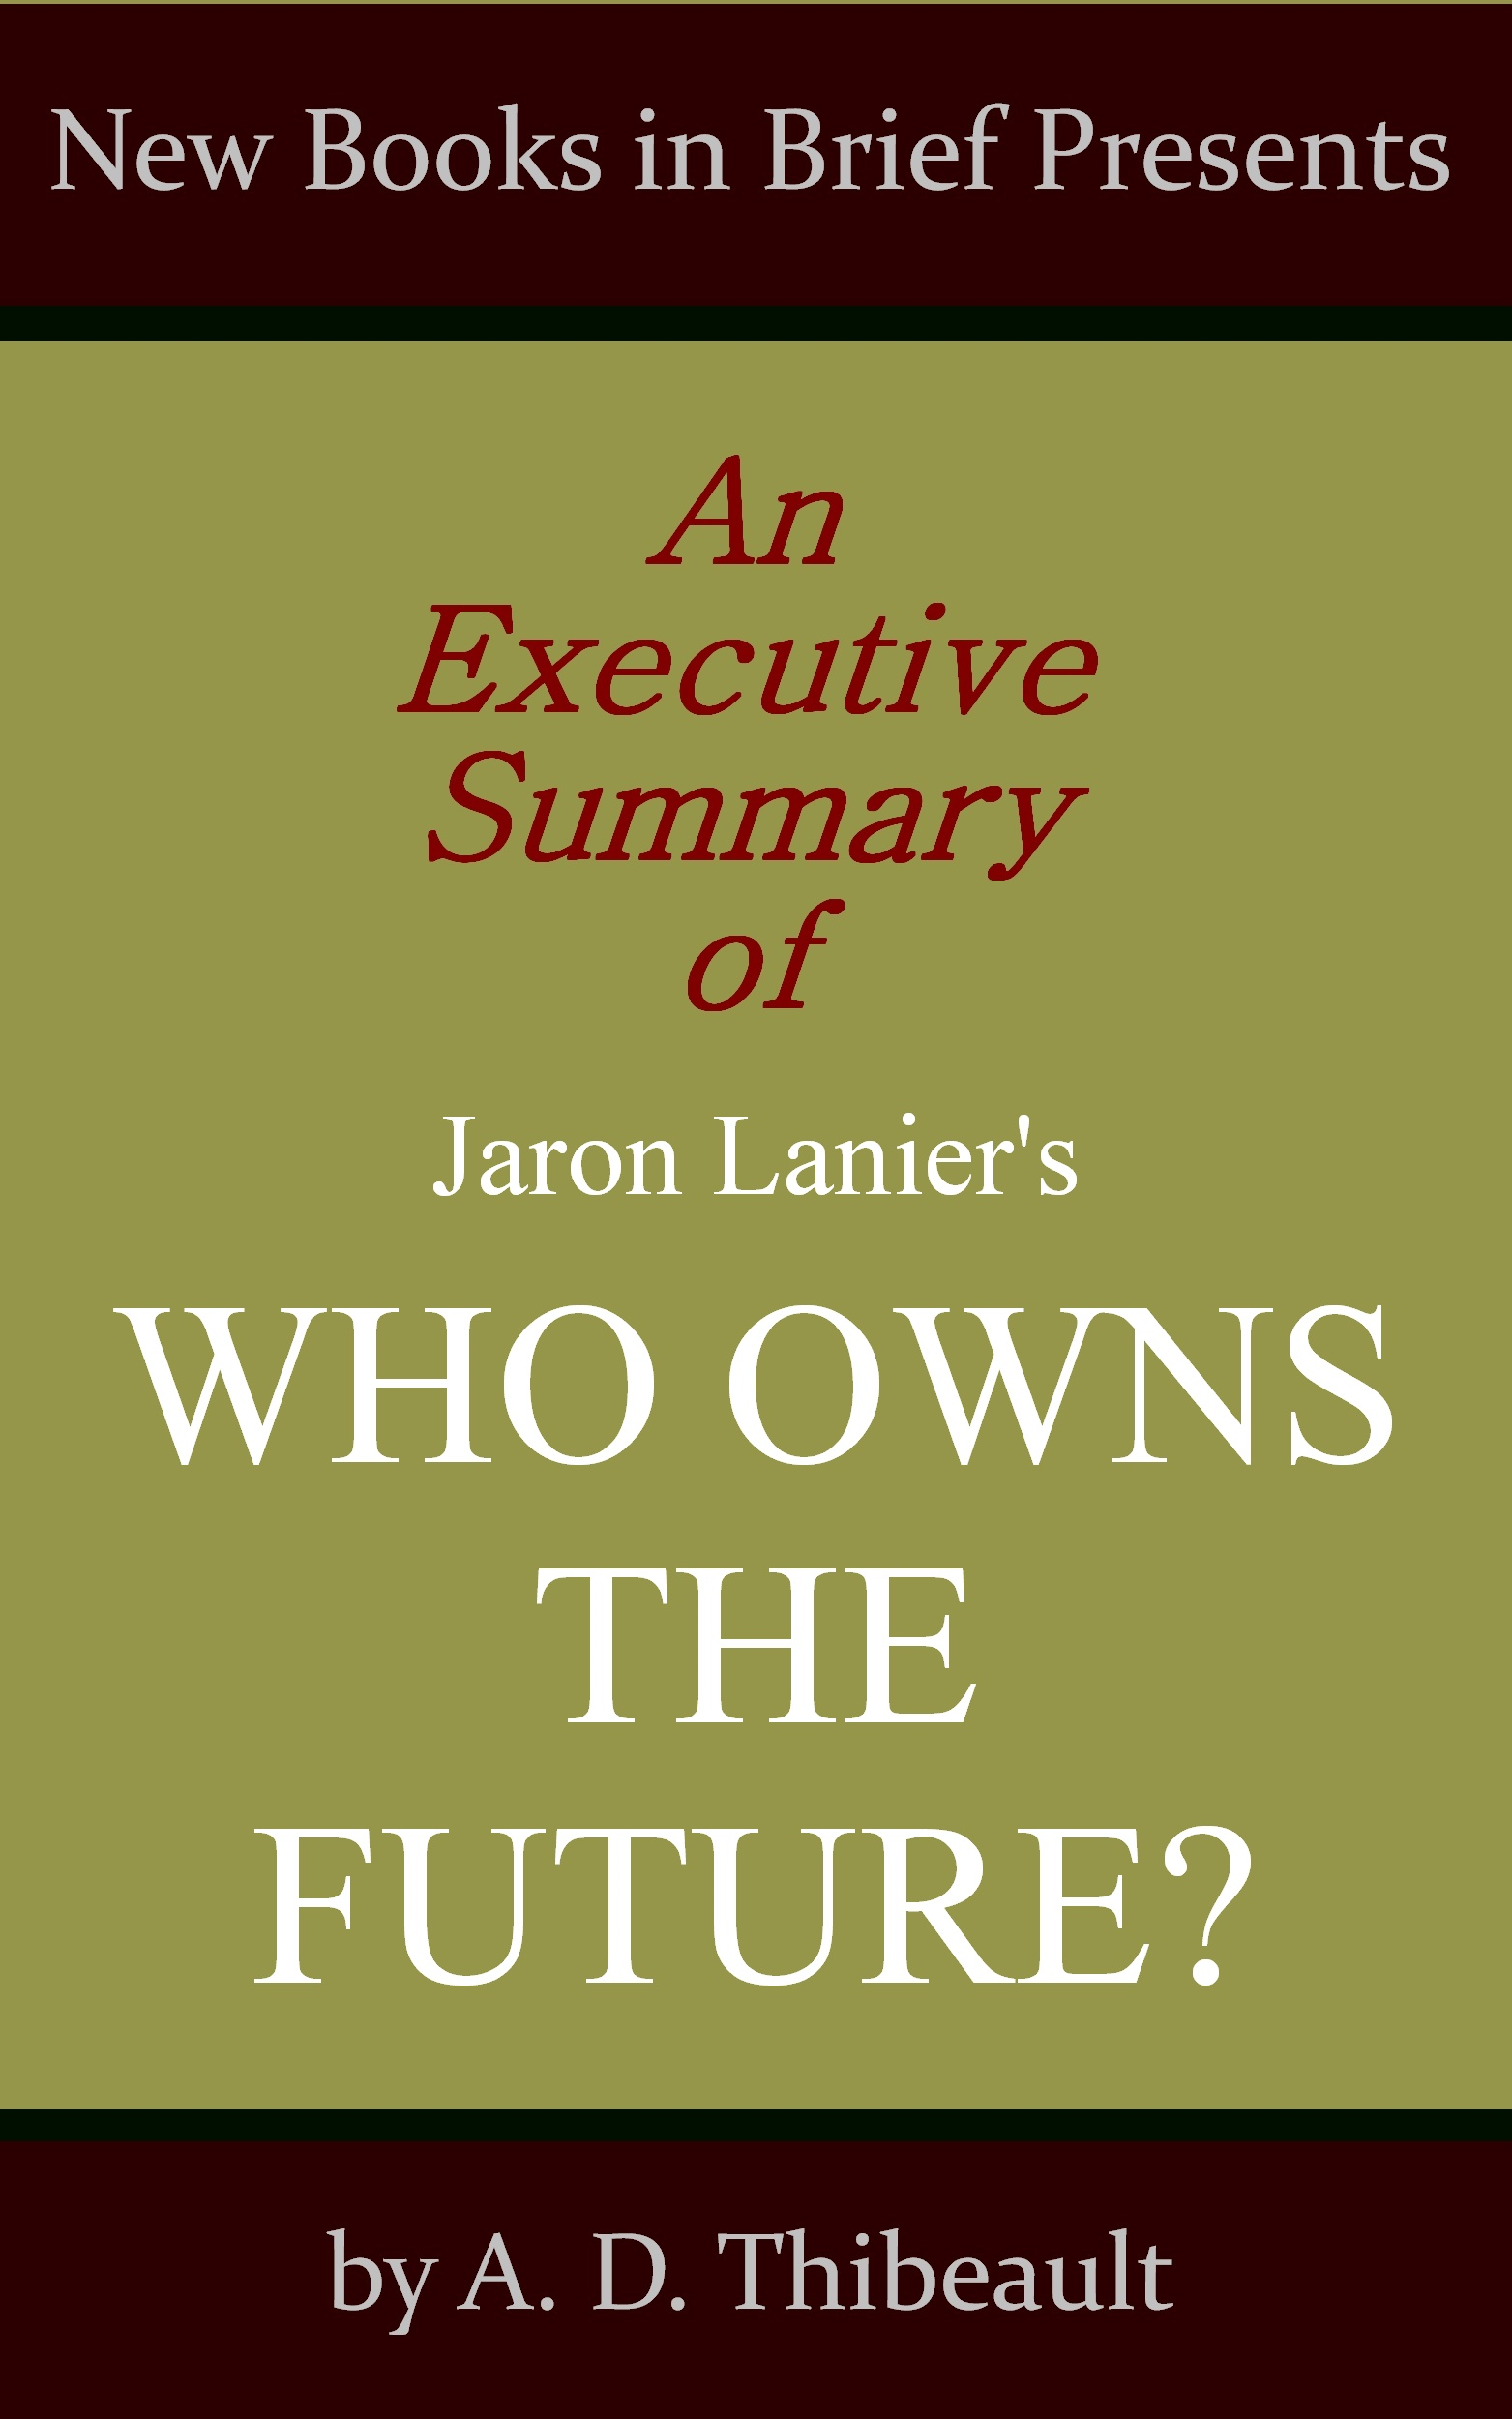 A. D. Thibeault - An Executive Summary of Jaron Lanier's 'Who Owns the Future?'